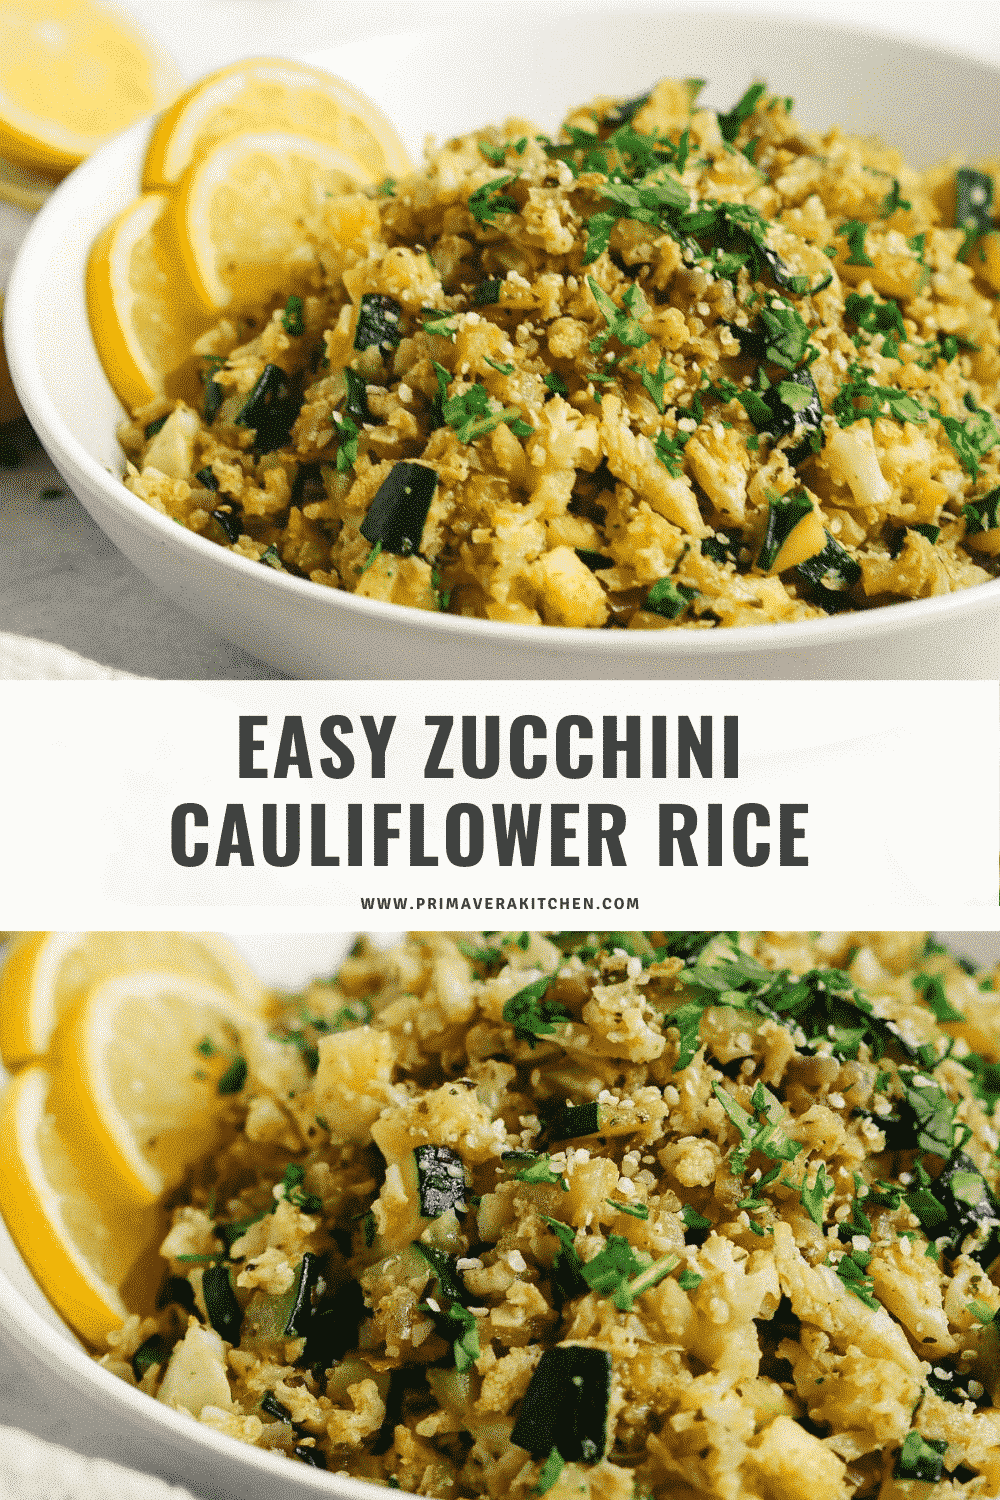 Easy Zucchini Cauliflower rice